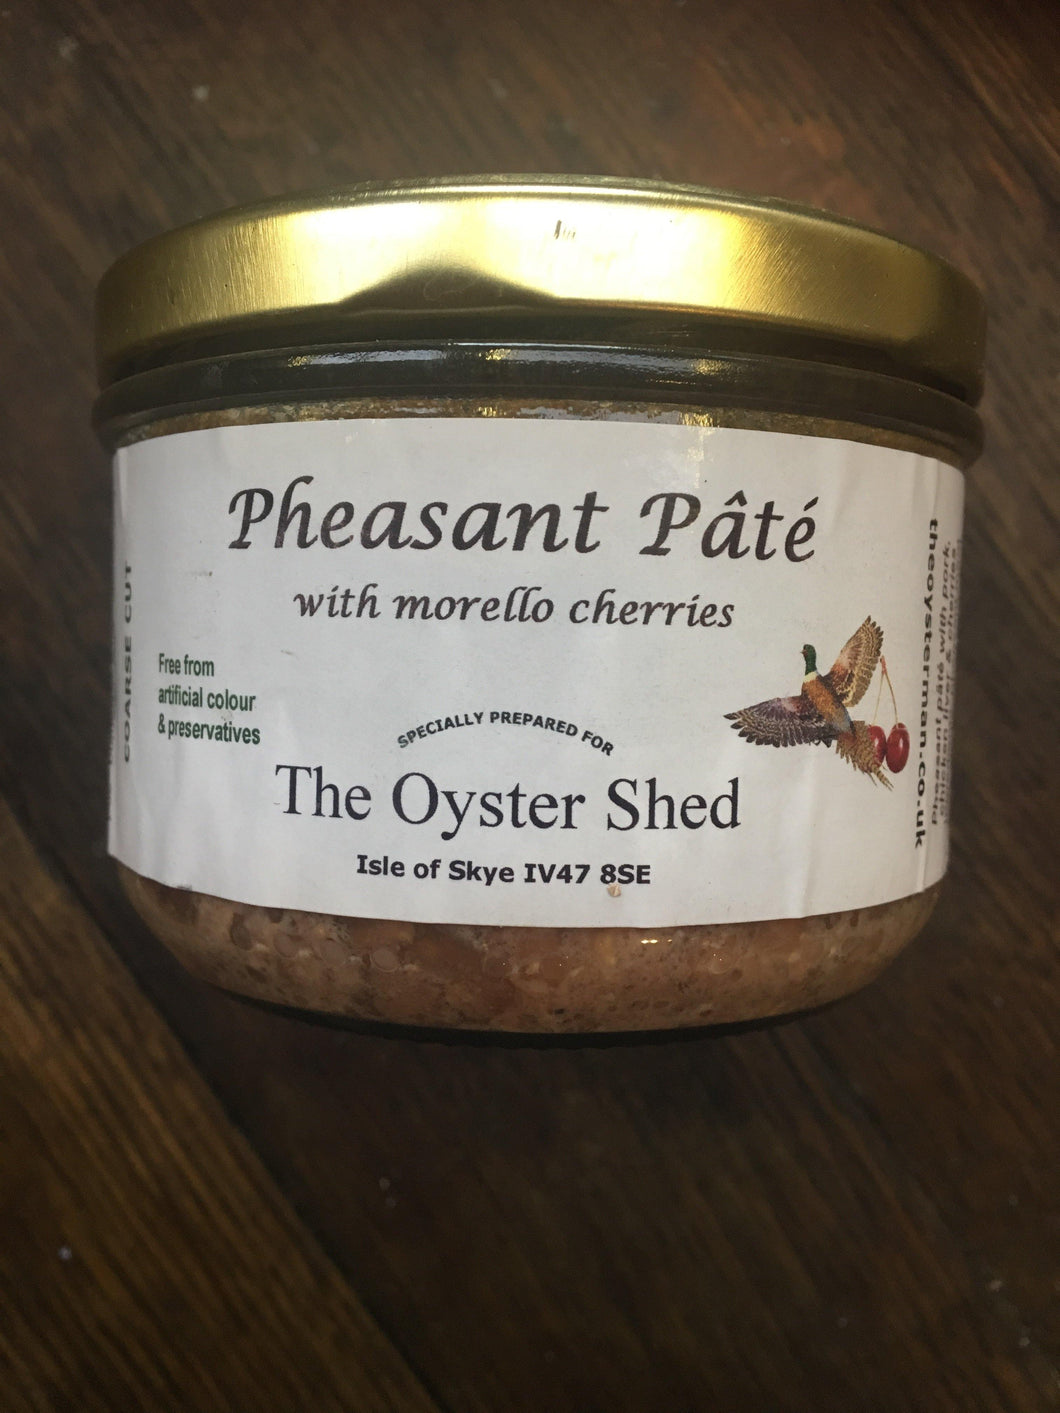 Pheasant Pate - The Oyster Shed